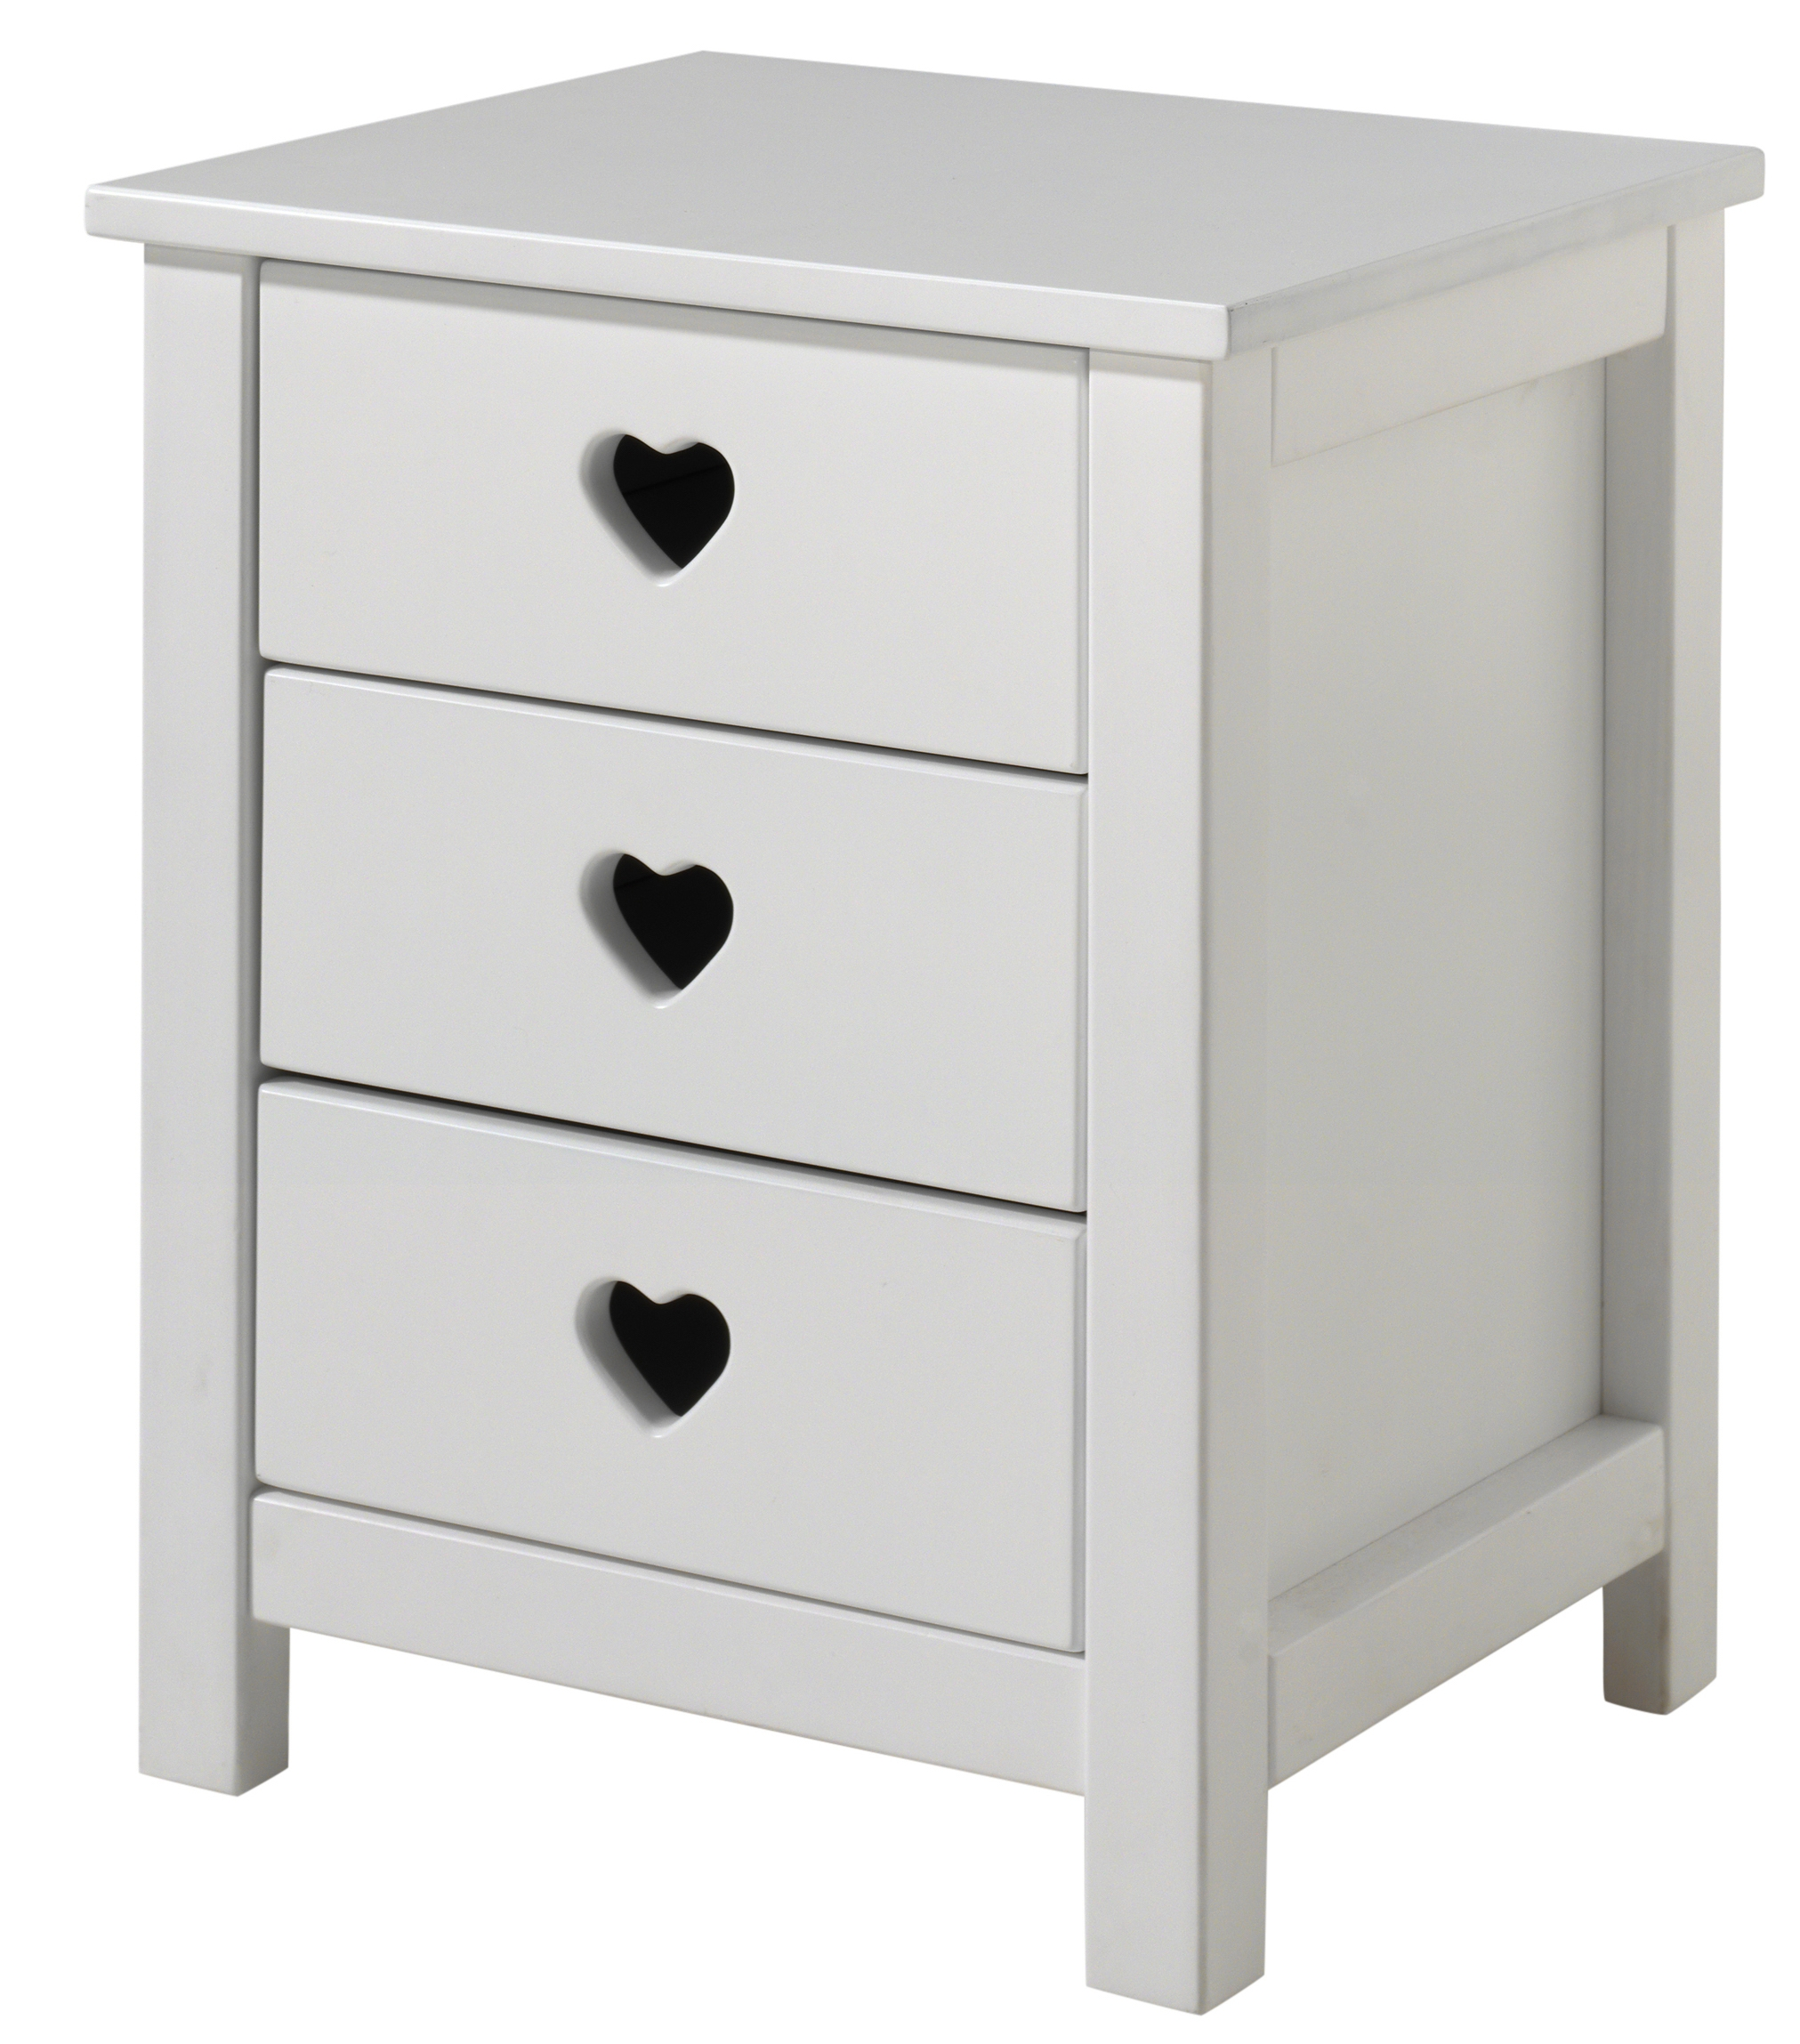 table de chevet 3 tiroirs laqu blanc coeur. Black Bedroom Furniture Sets. Home Design Ideas